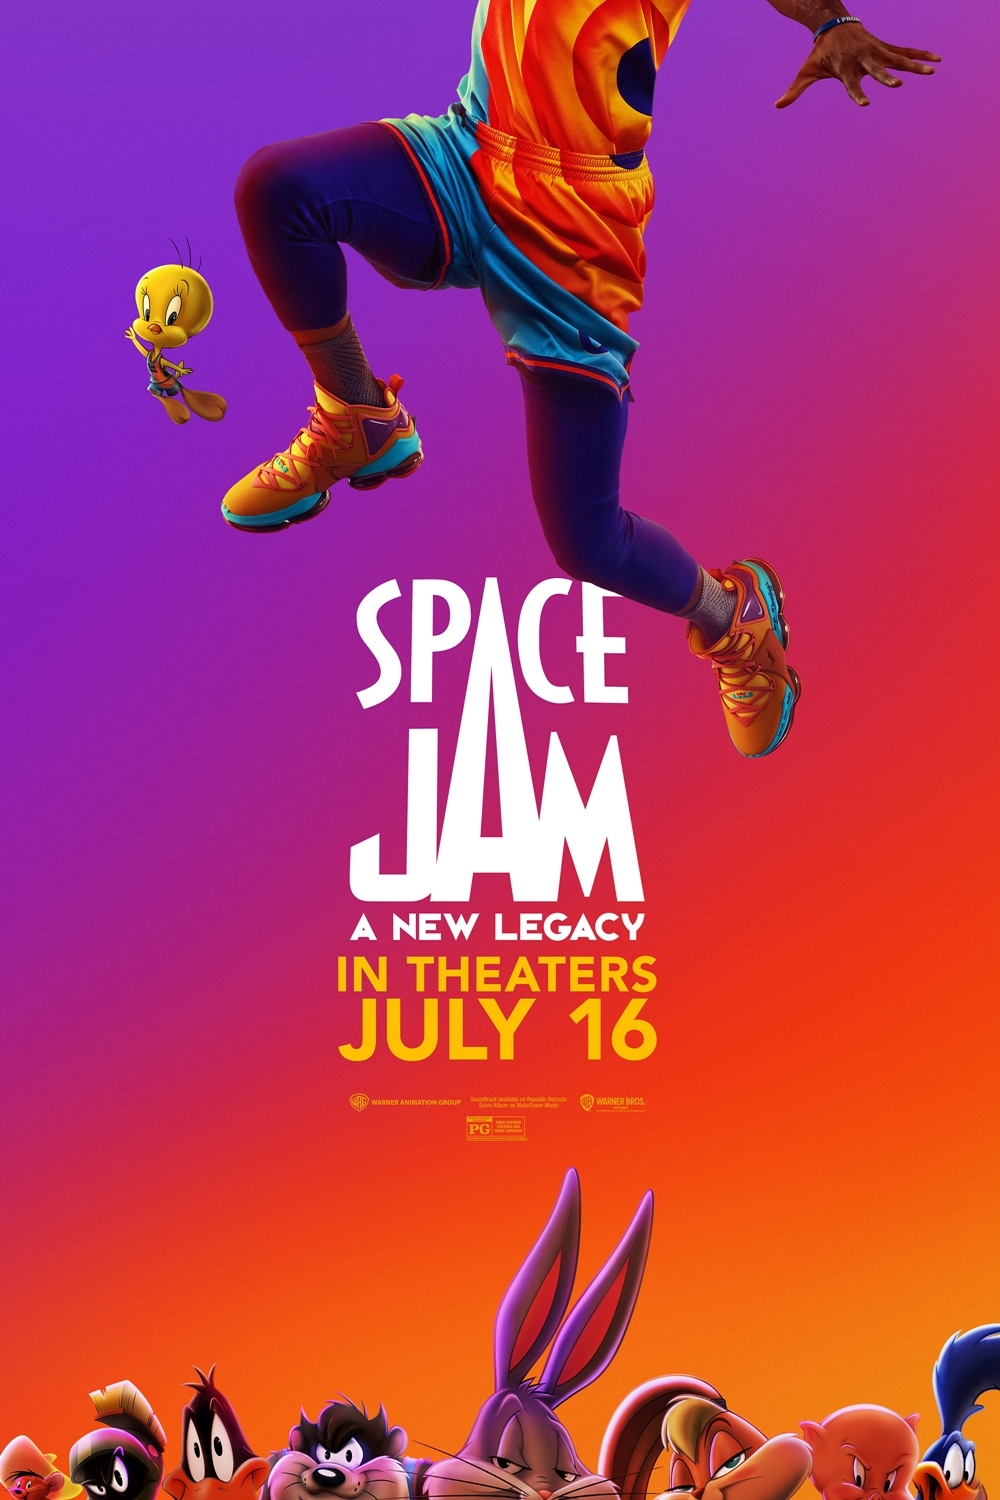 Still of Space Jam: A New Legacy